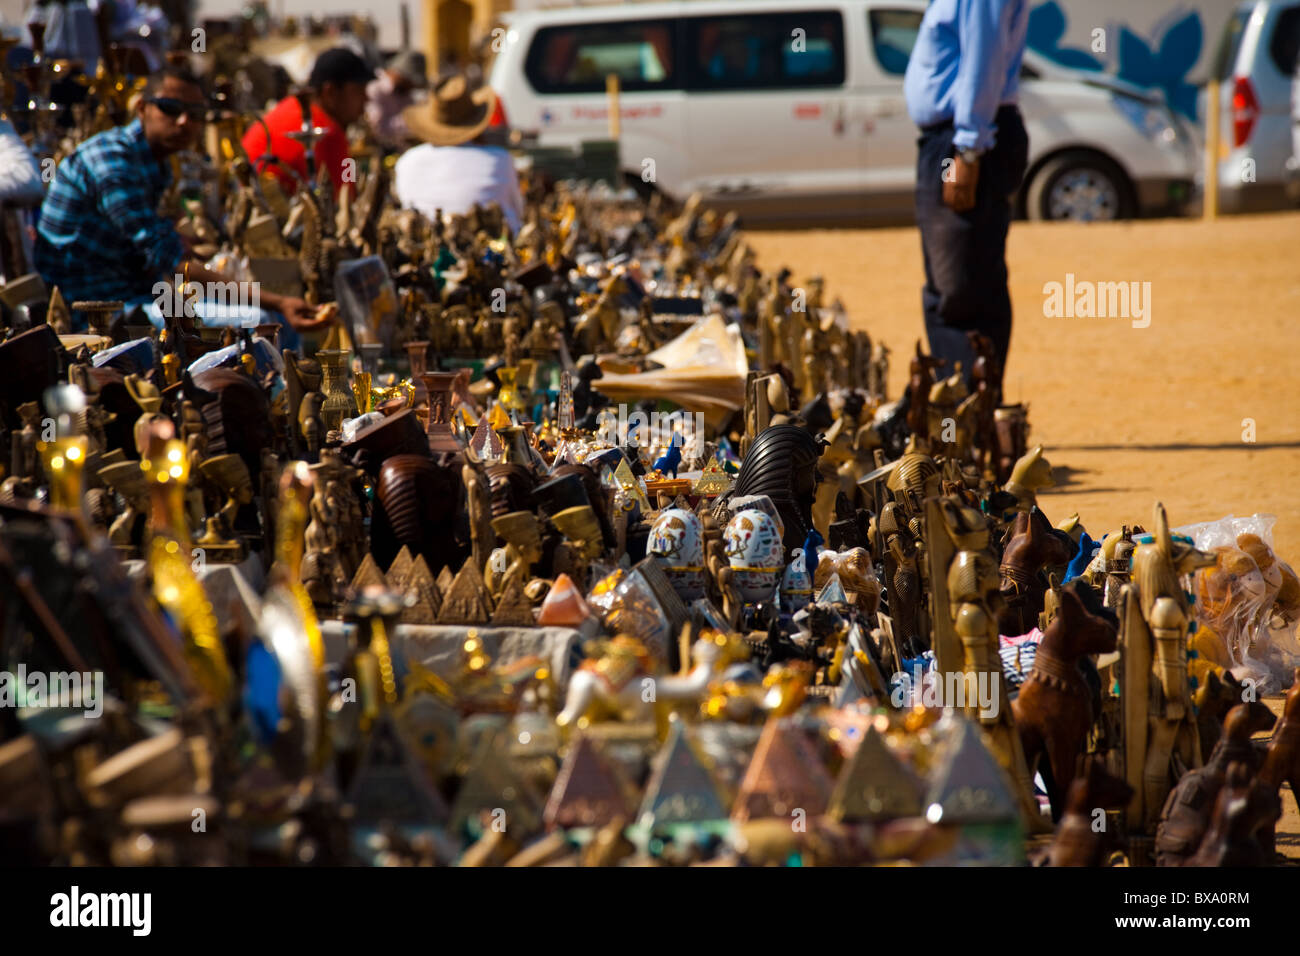 Kitschy tourist souvenirs stacked high on display at Great Pyramids viewpoint - Stock Image